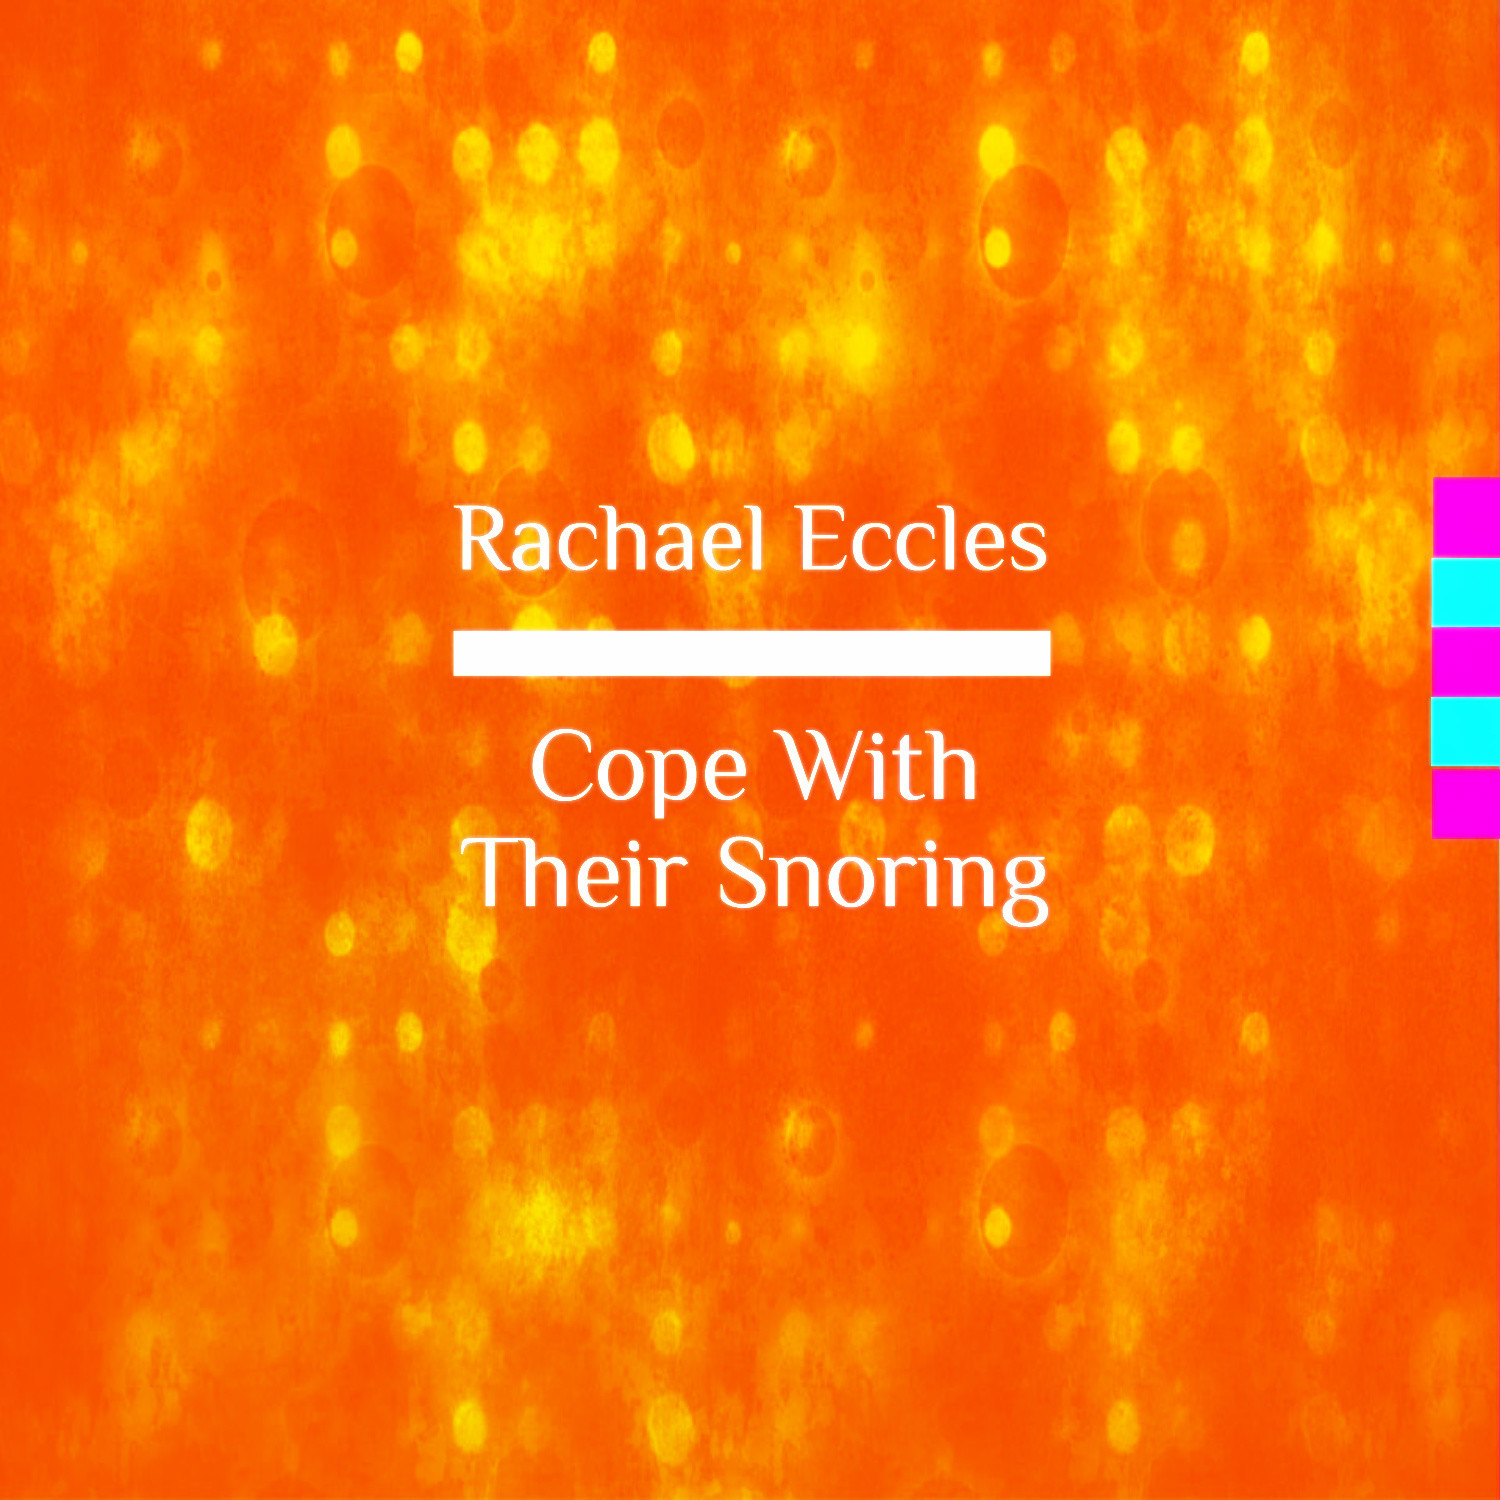 Cope with their snoring, learn to ignore snoring, Self Hypnosis CD